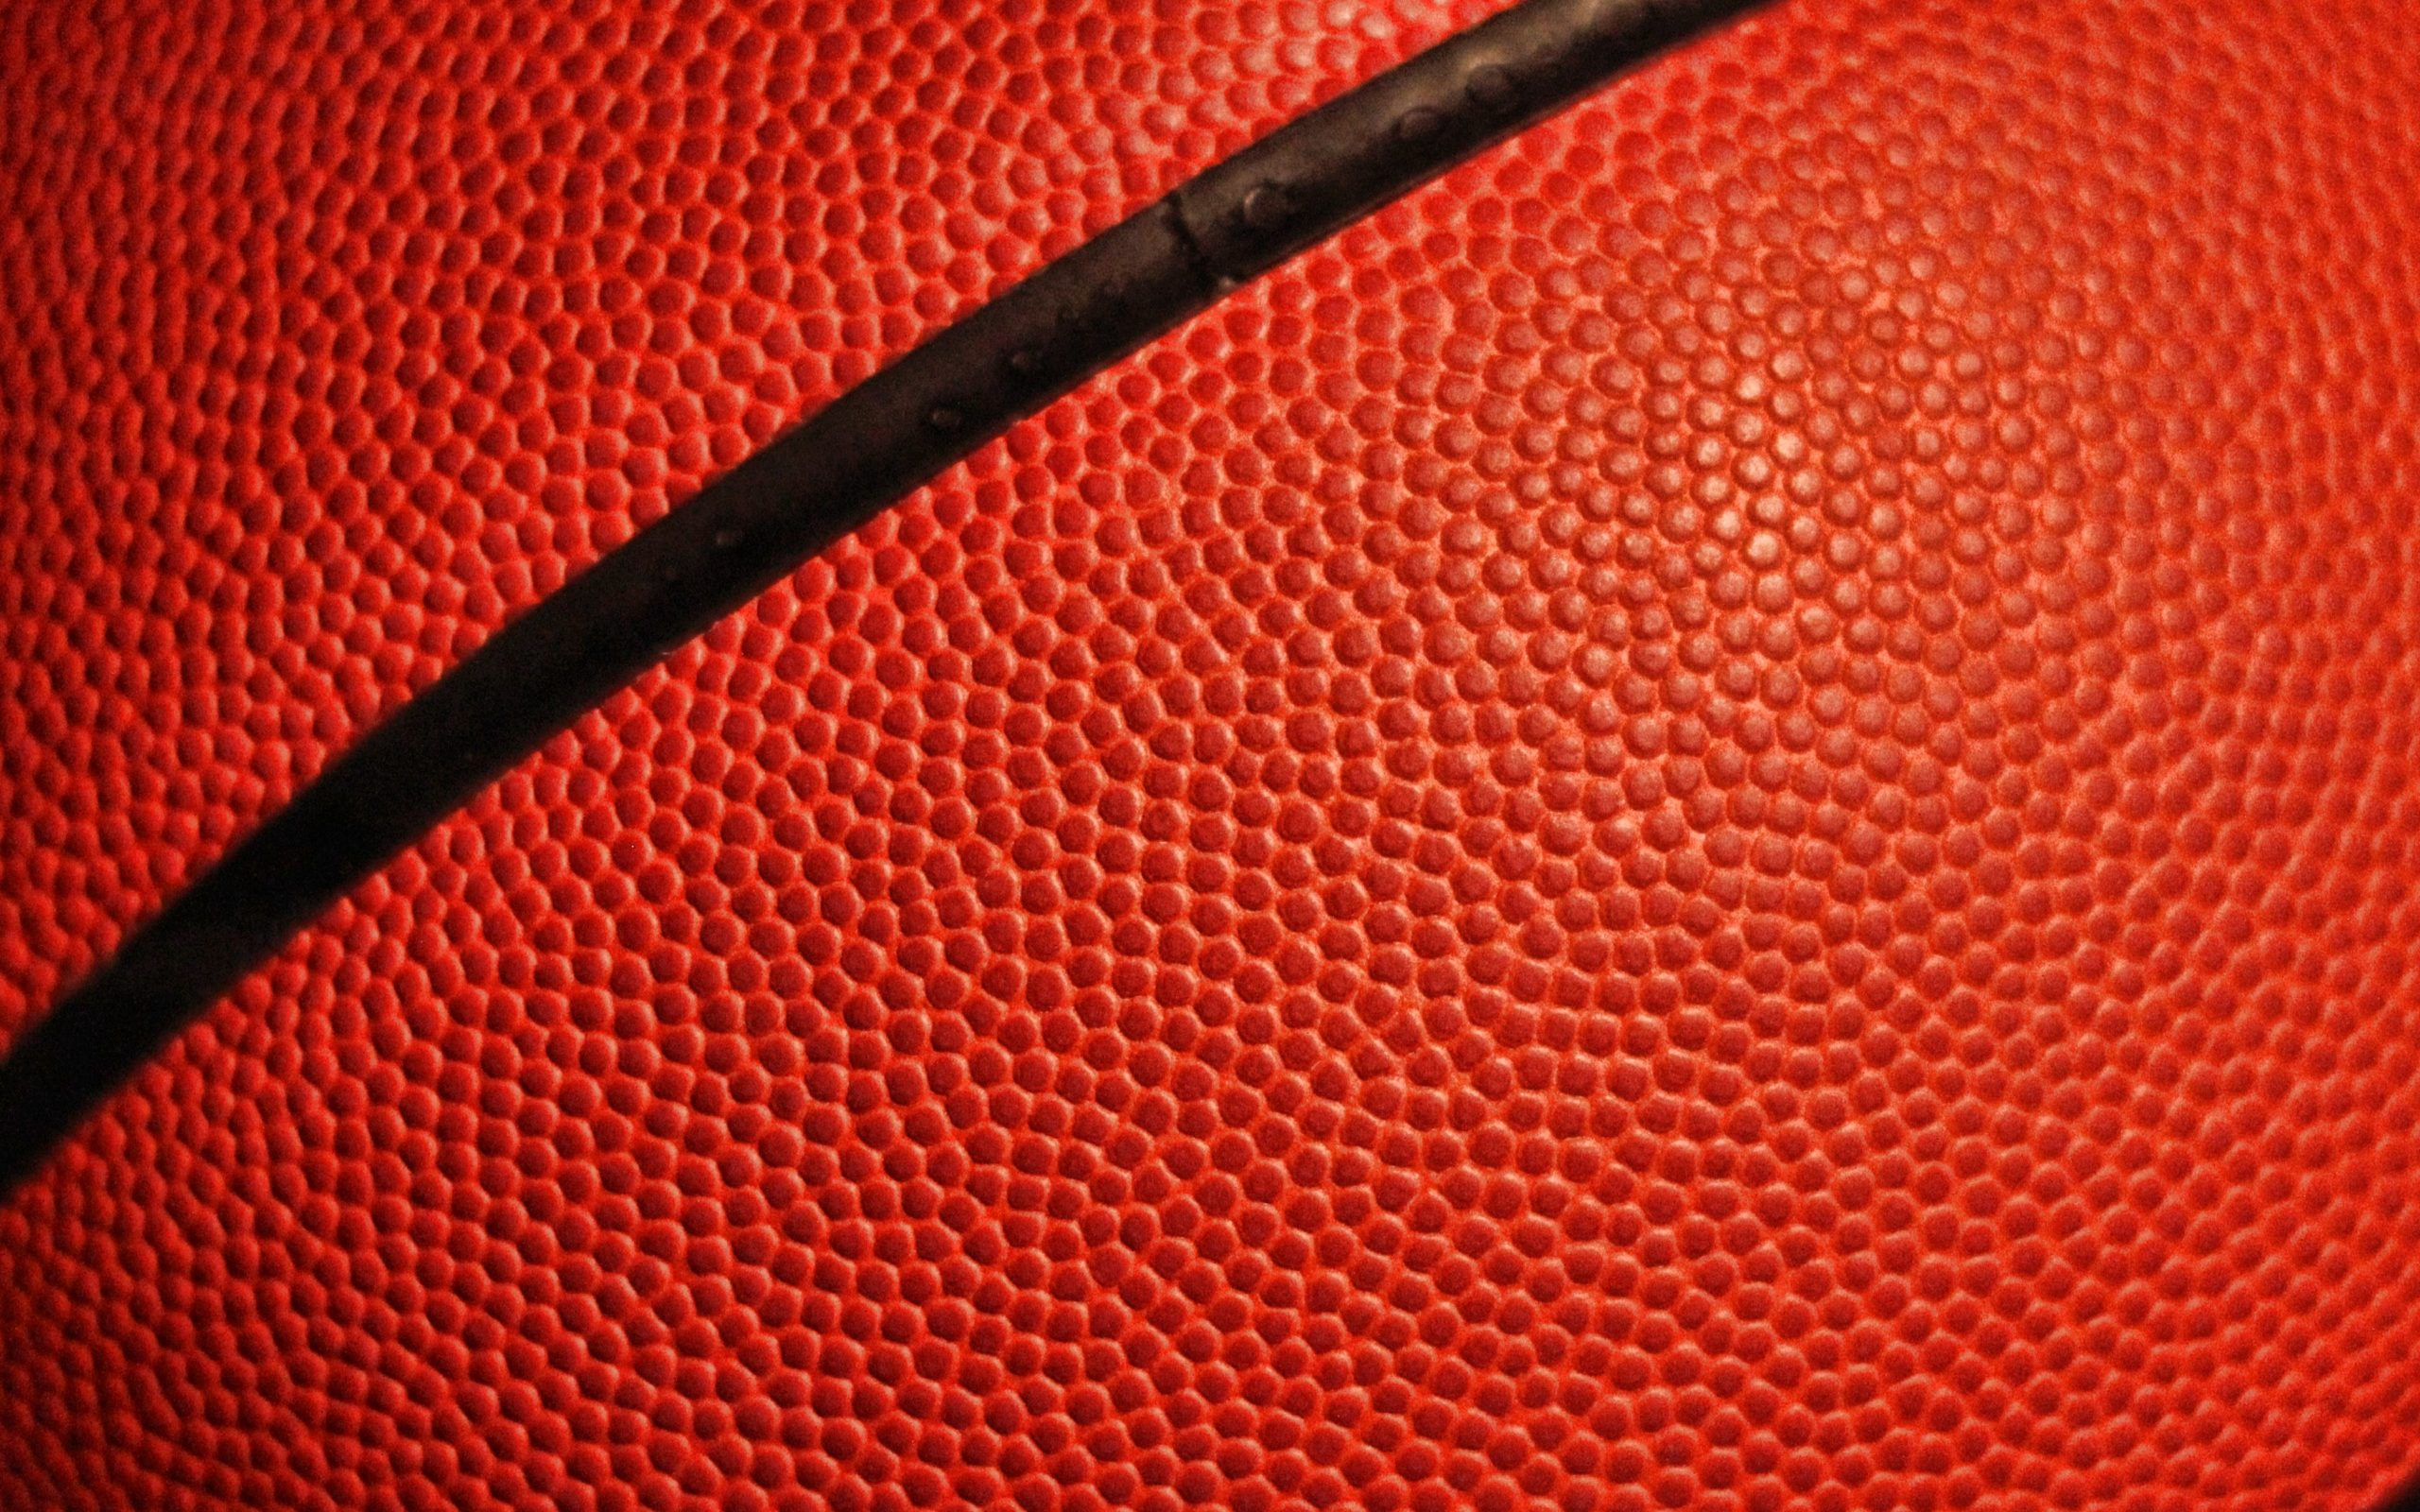 hd basketball pictures